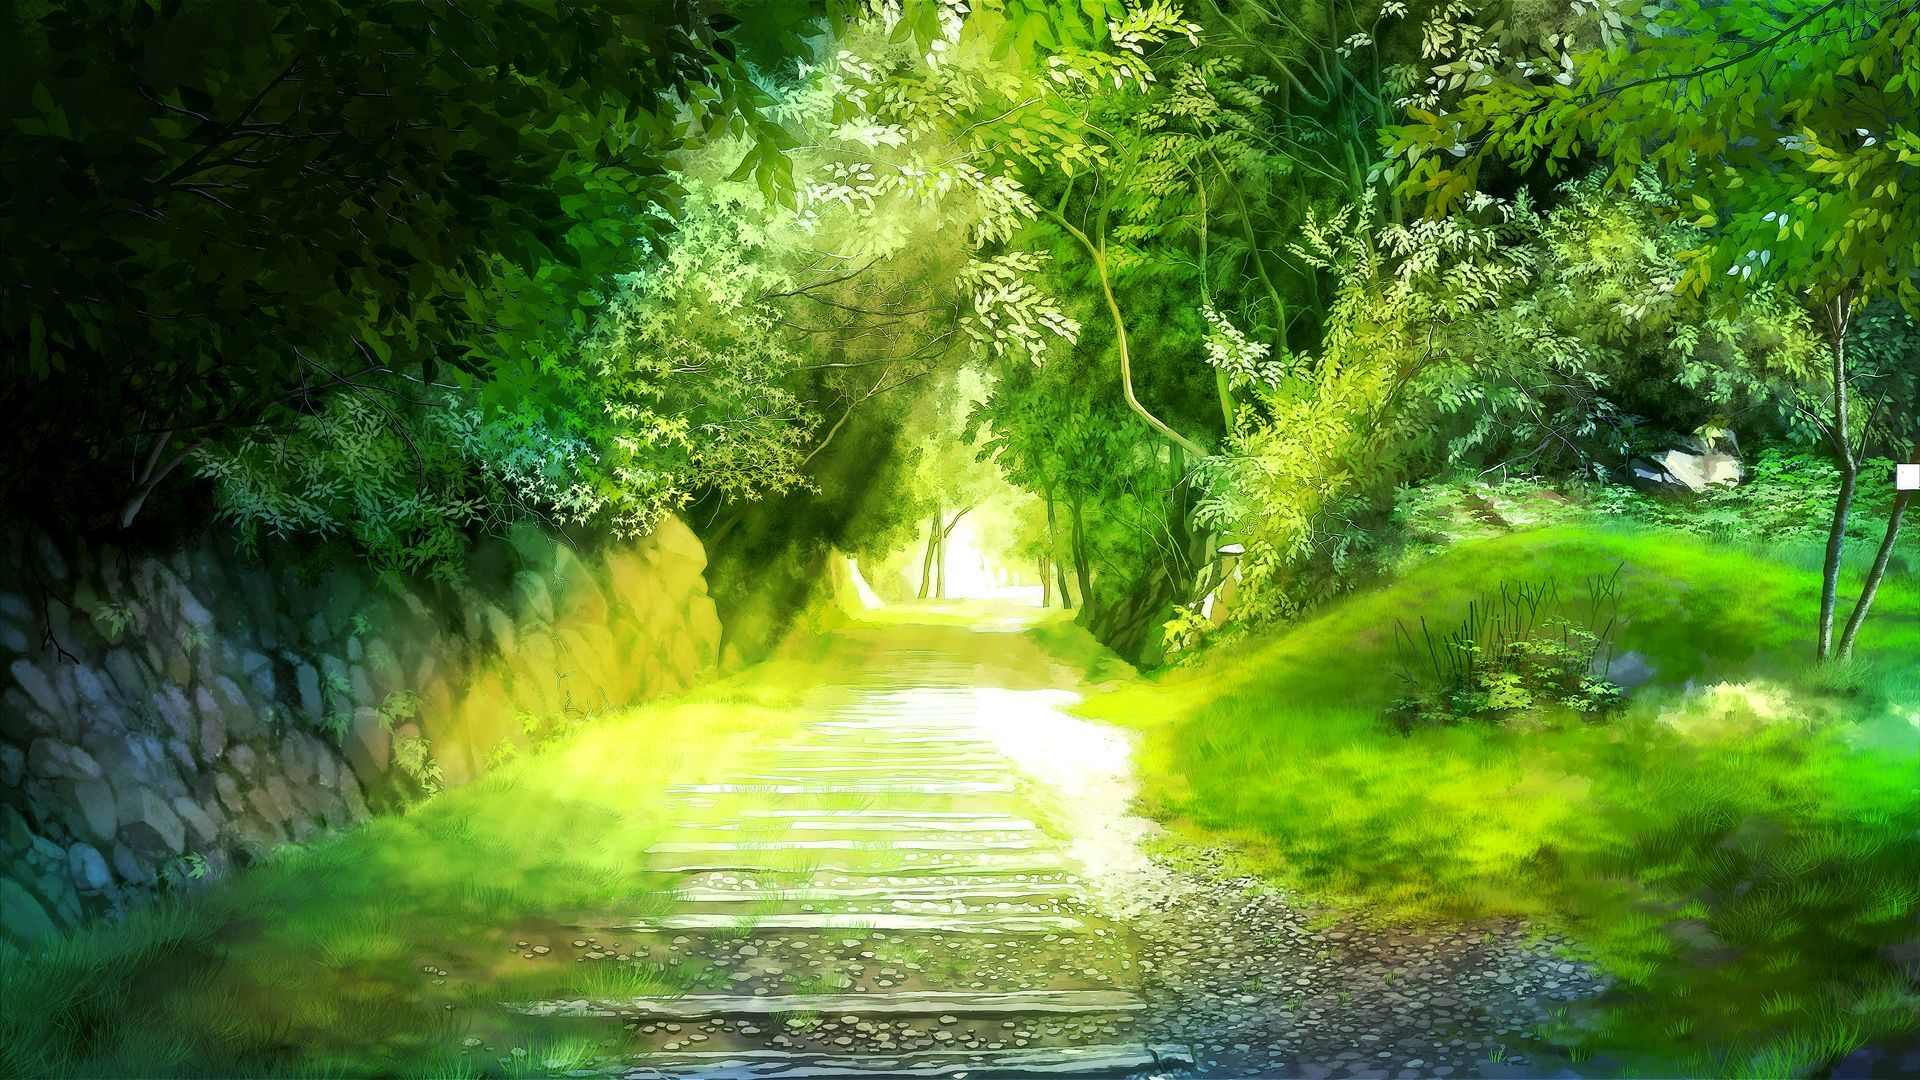 1920x1080 Nature Anime Scenery Background Wallpaper | Resources: Wallpapers ...